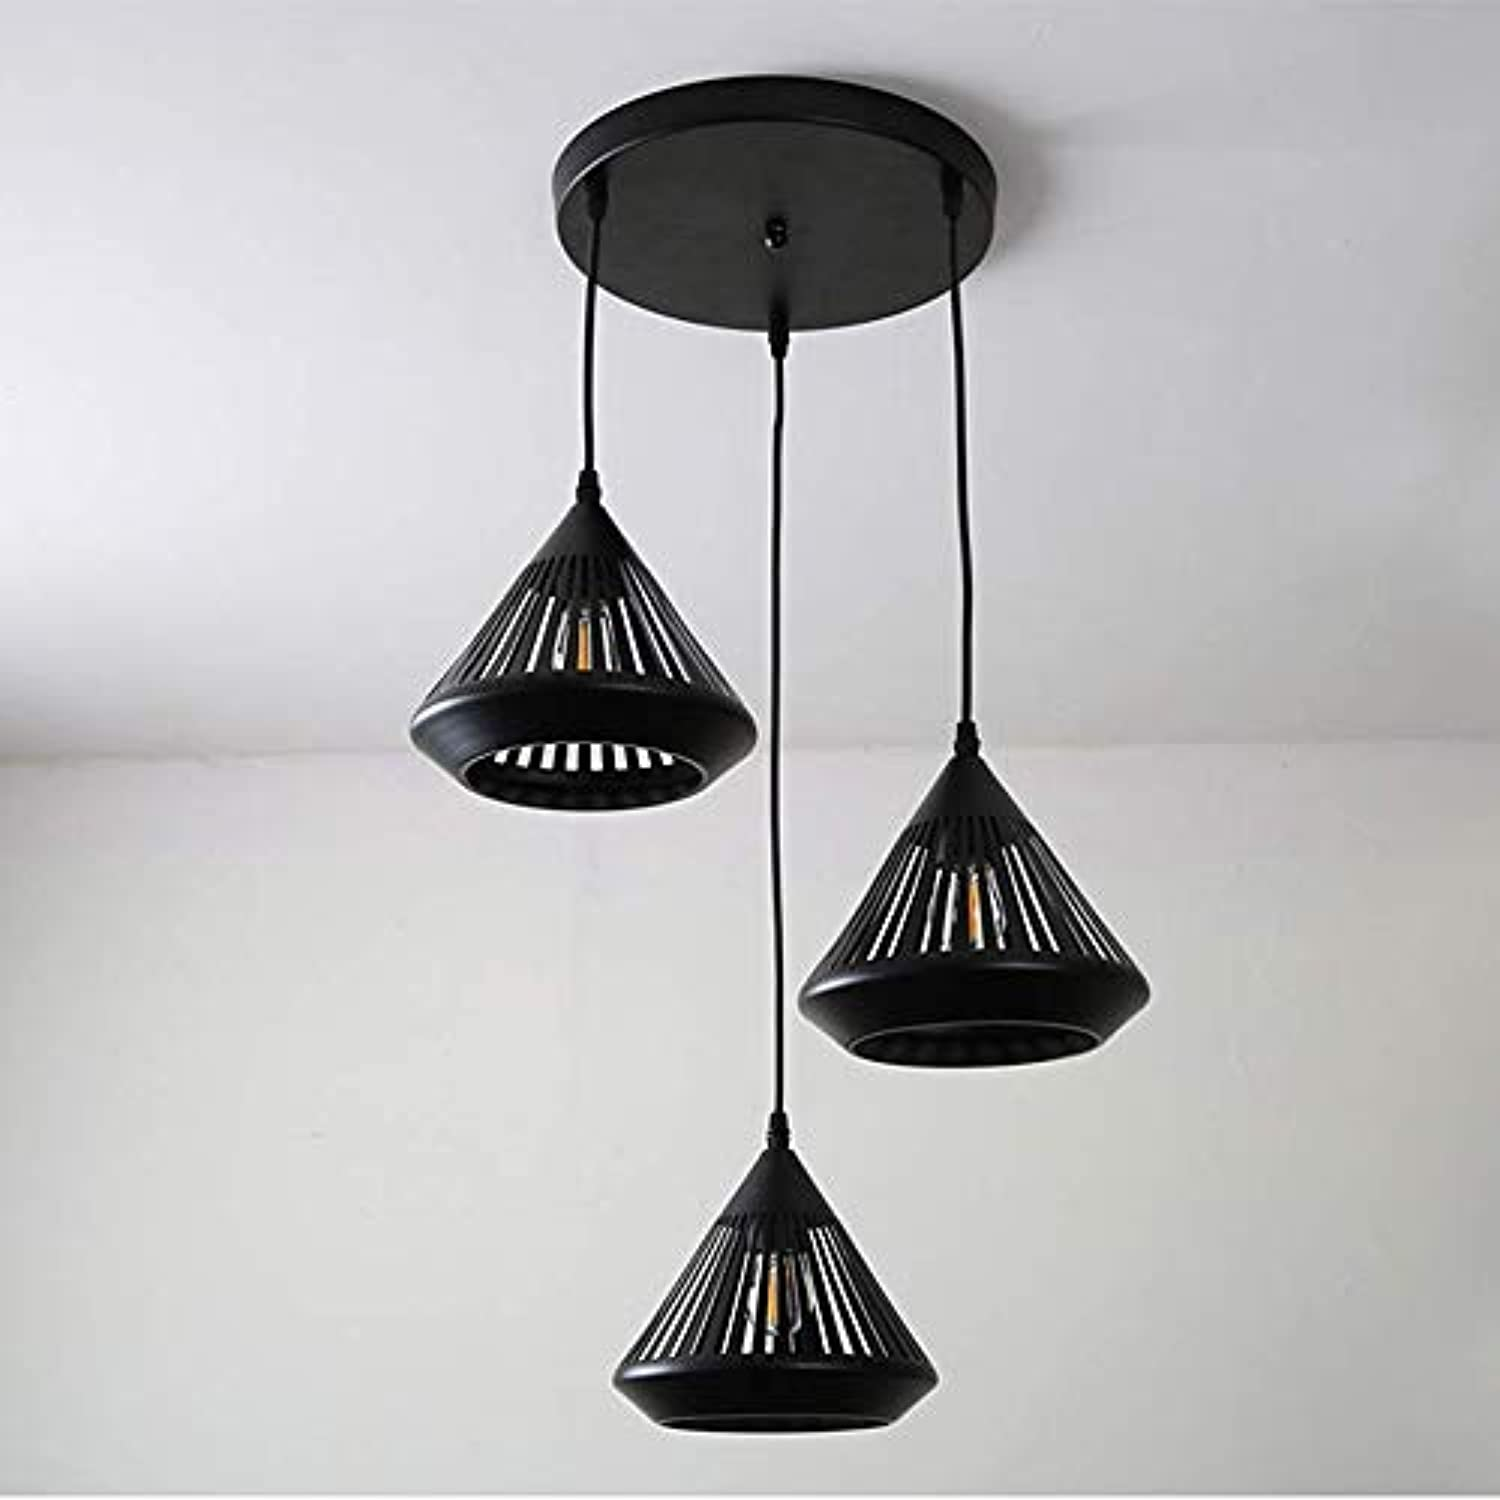 Modern Dining Room Chandelier Light Hollow Carved Iron Craft Pendant Lamp Creative Pendant Light for Dining Room, Restaurant, Hotel, Café, Platz,B